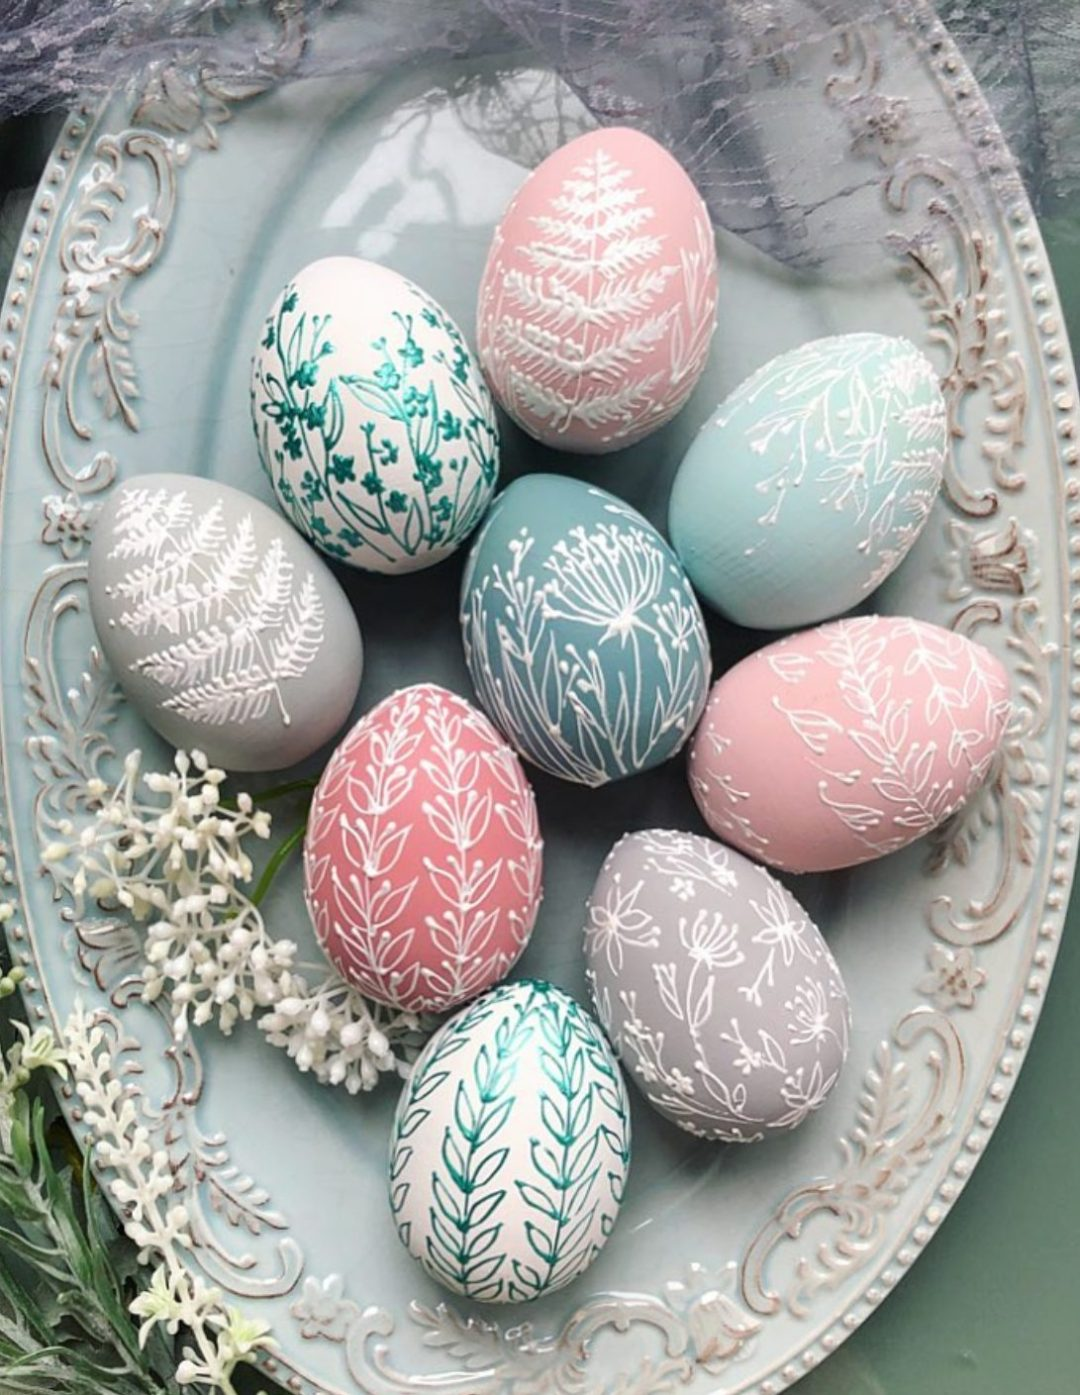 Pastel pink and blue Easter egg decor